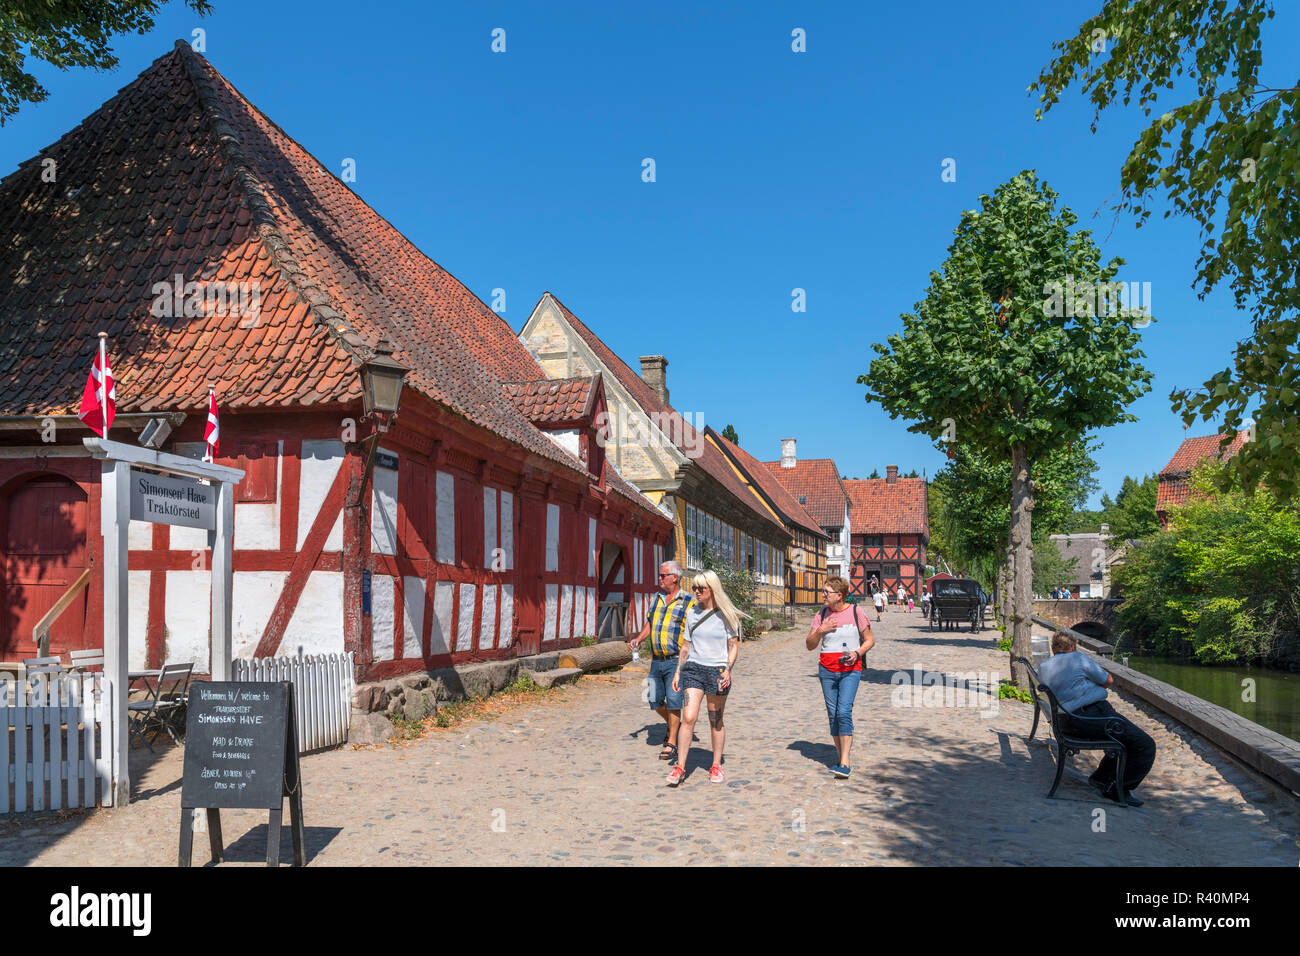 The Old Town (Den Gamle By), an open air museum in Aarhus, Denmark - Stock Image